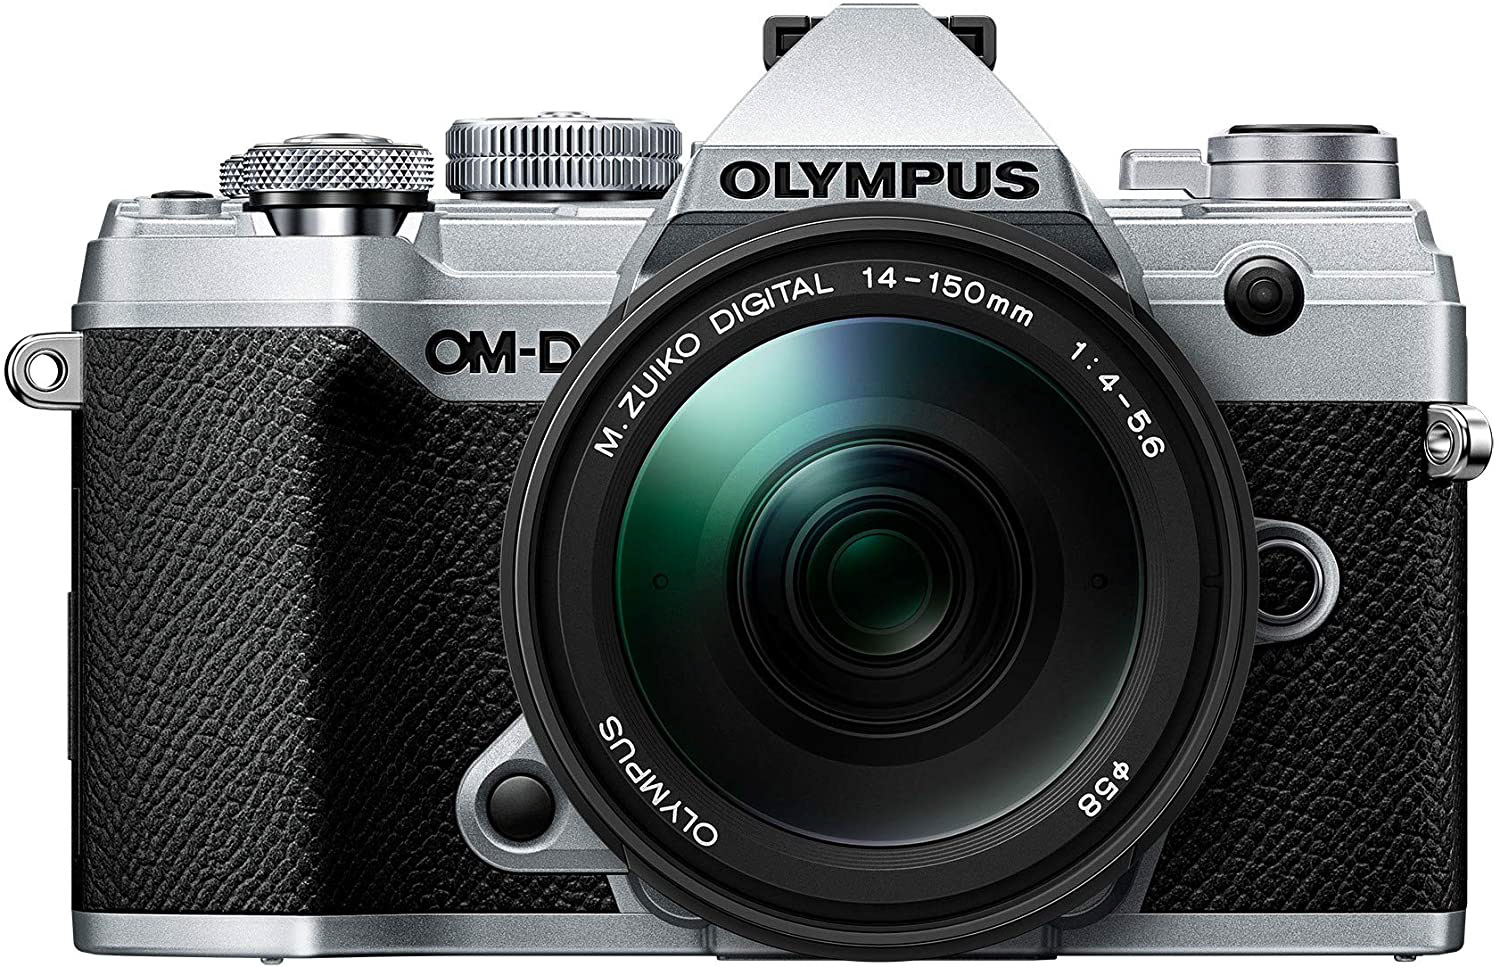 Best camera for travel photography: the Olympus OM-D E-M5 Mark III